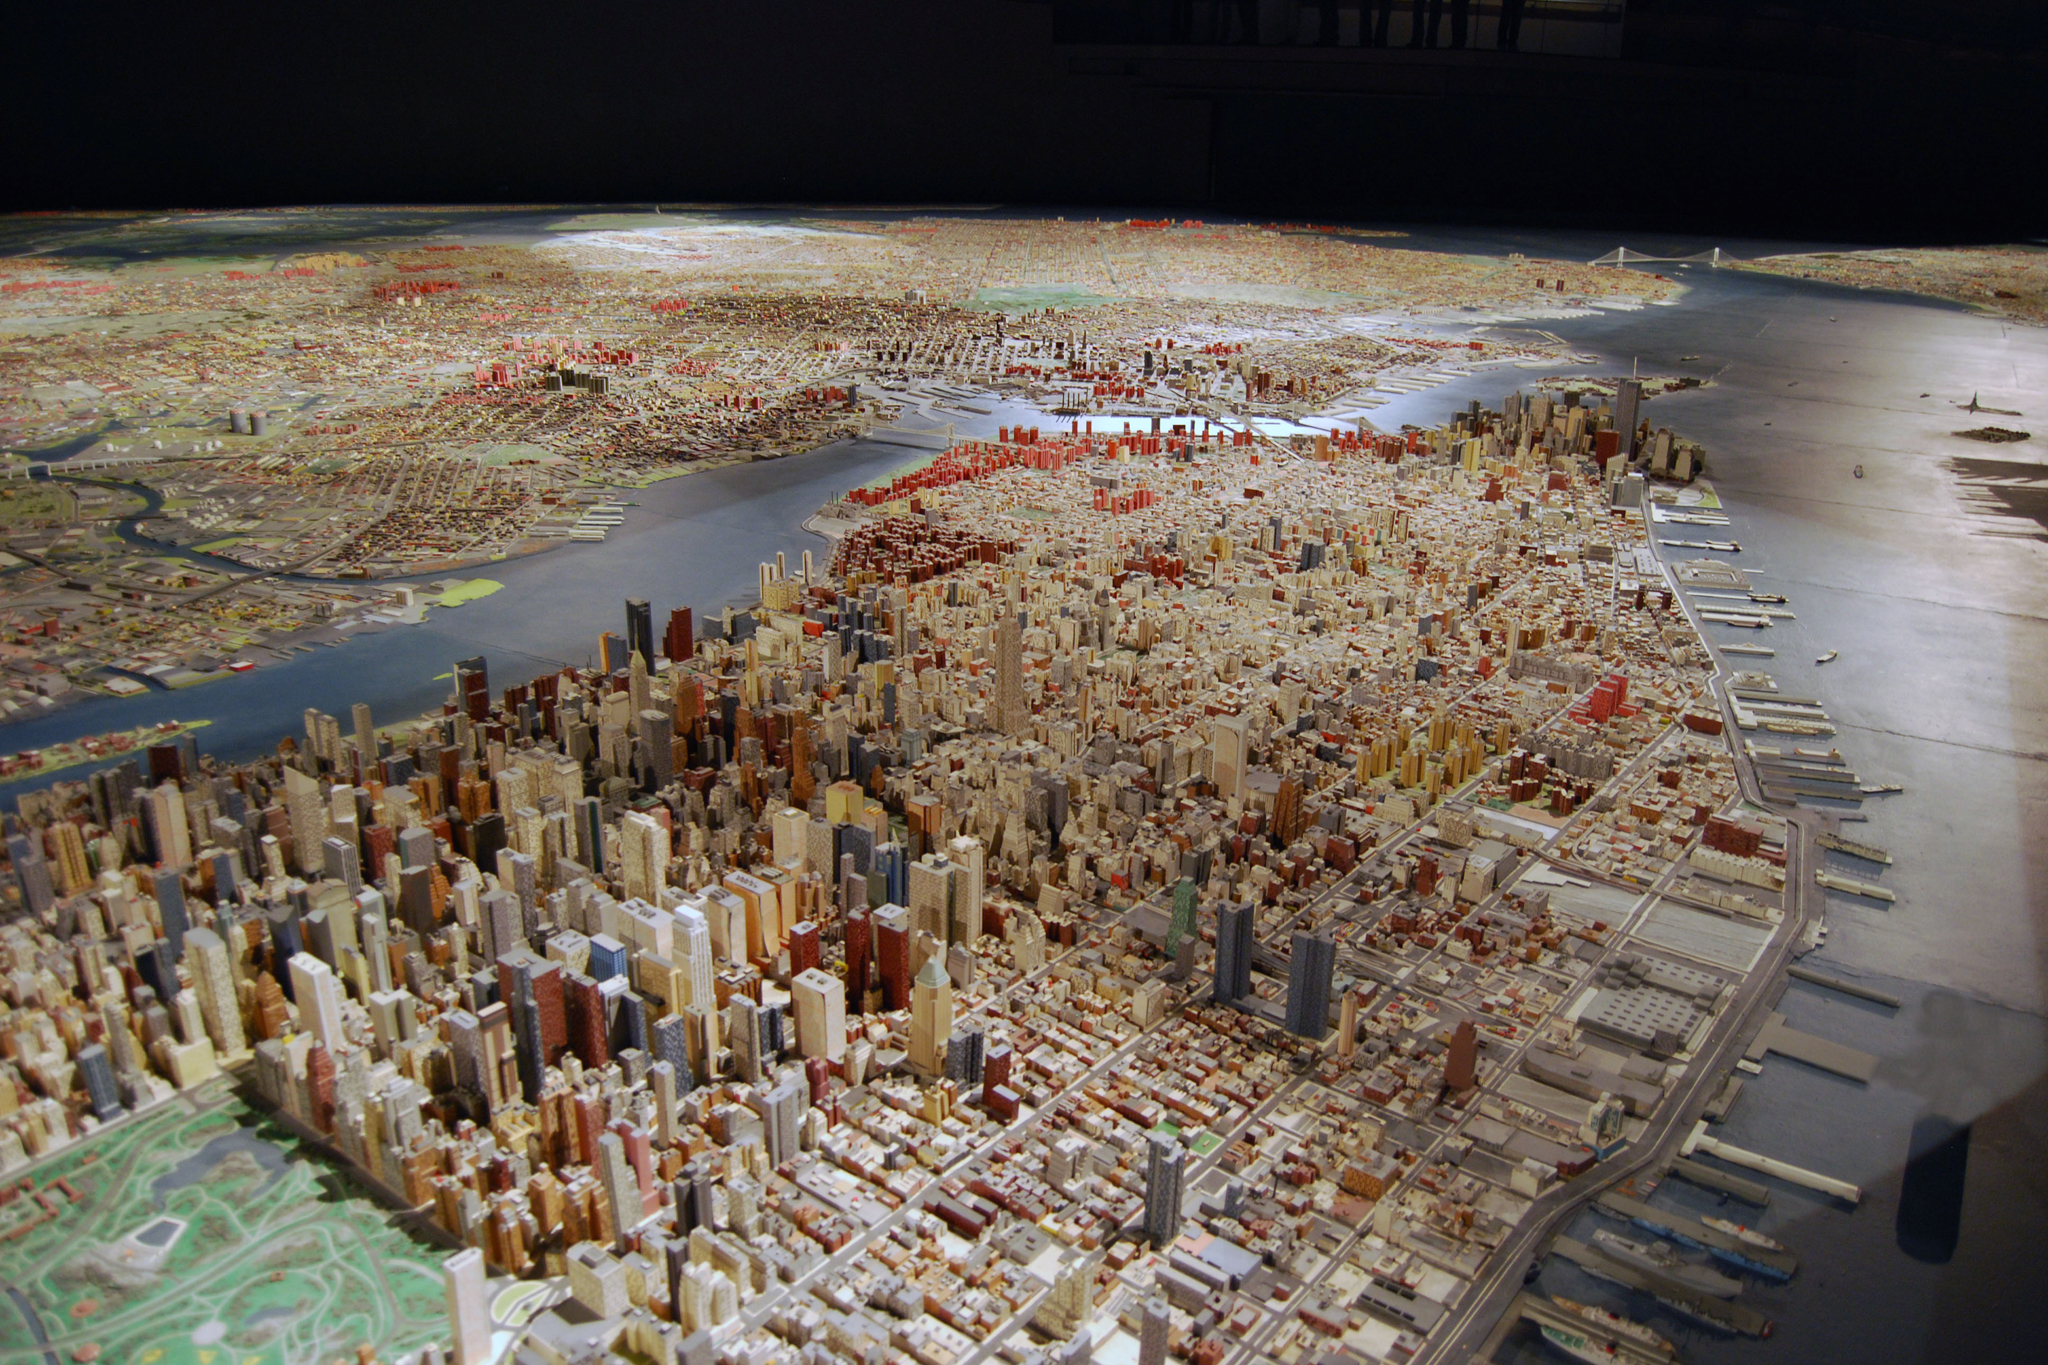 Peep the entirety of NYC in one fell swoop at the Queens Museum of Art